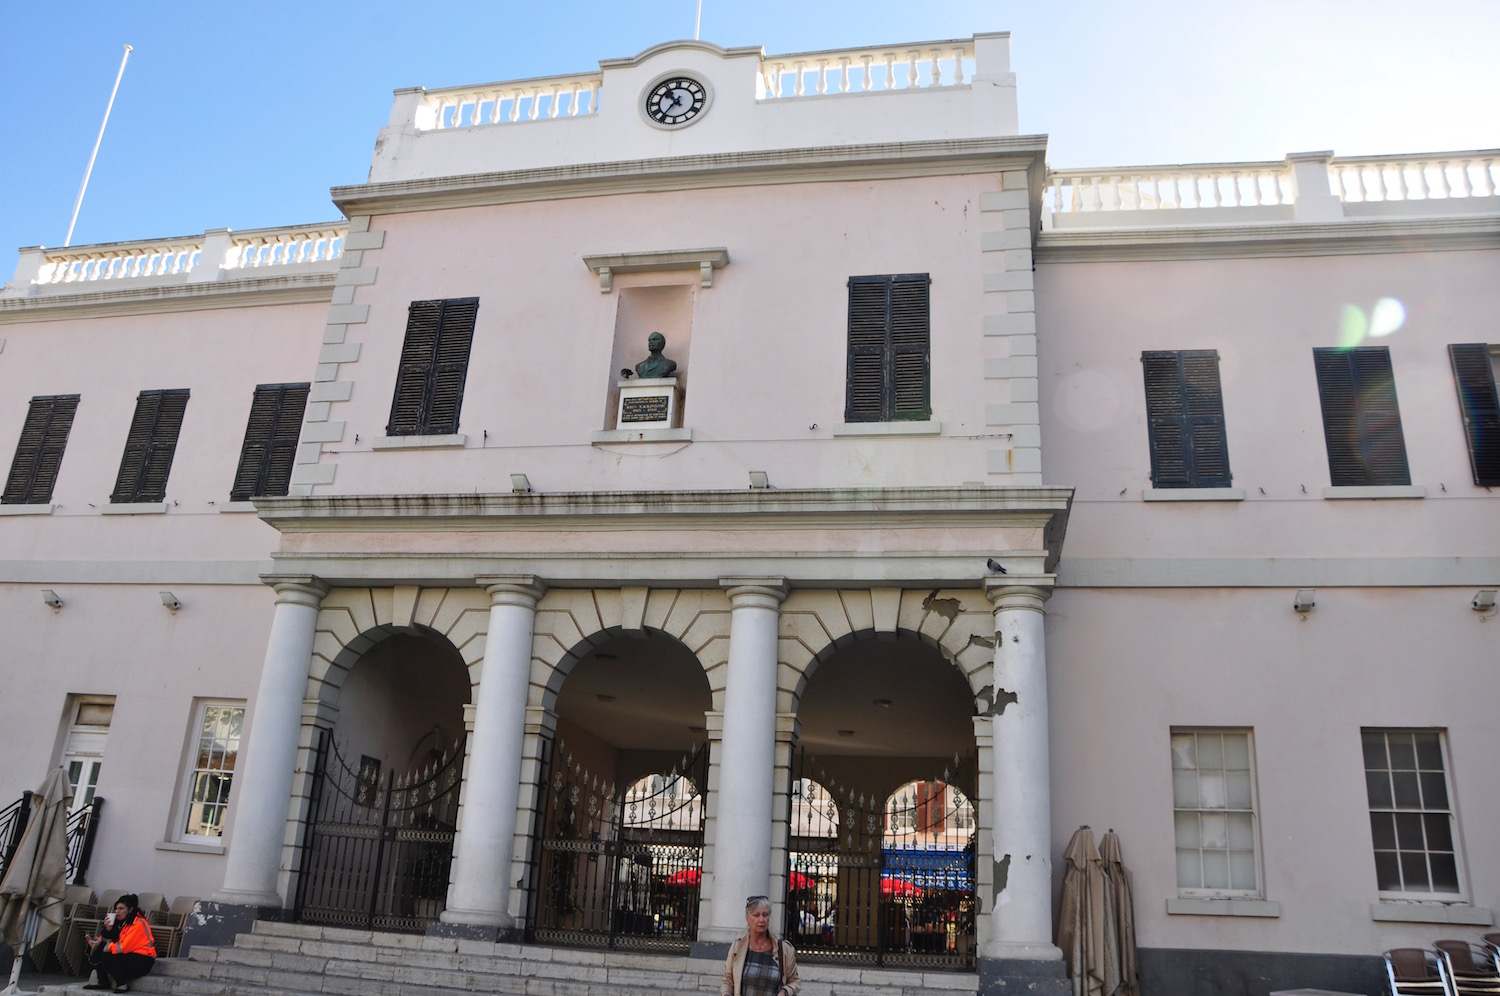 Gibraltar Parliament - The hot seat of government backs onto the square. Take a 'parliamentary seat' for British fish and chips at the restaurant out front which shares the same building!